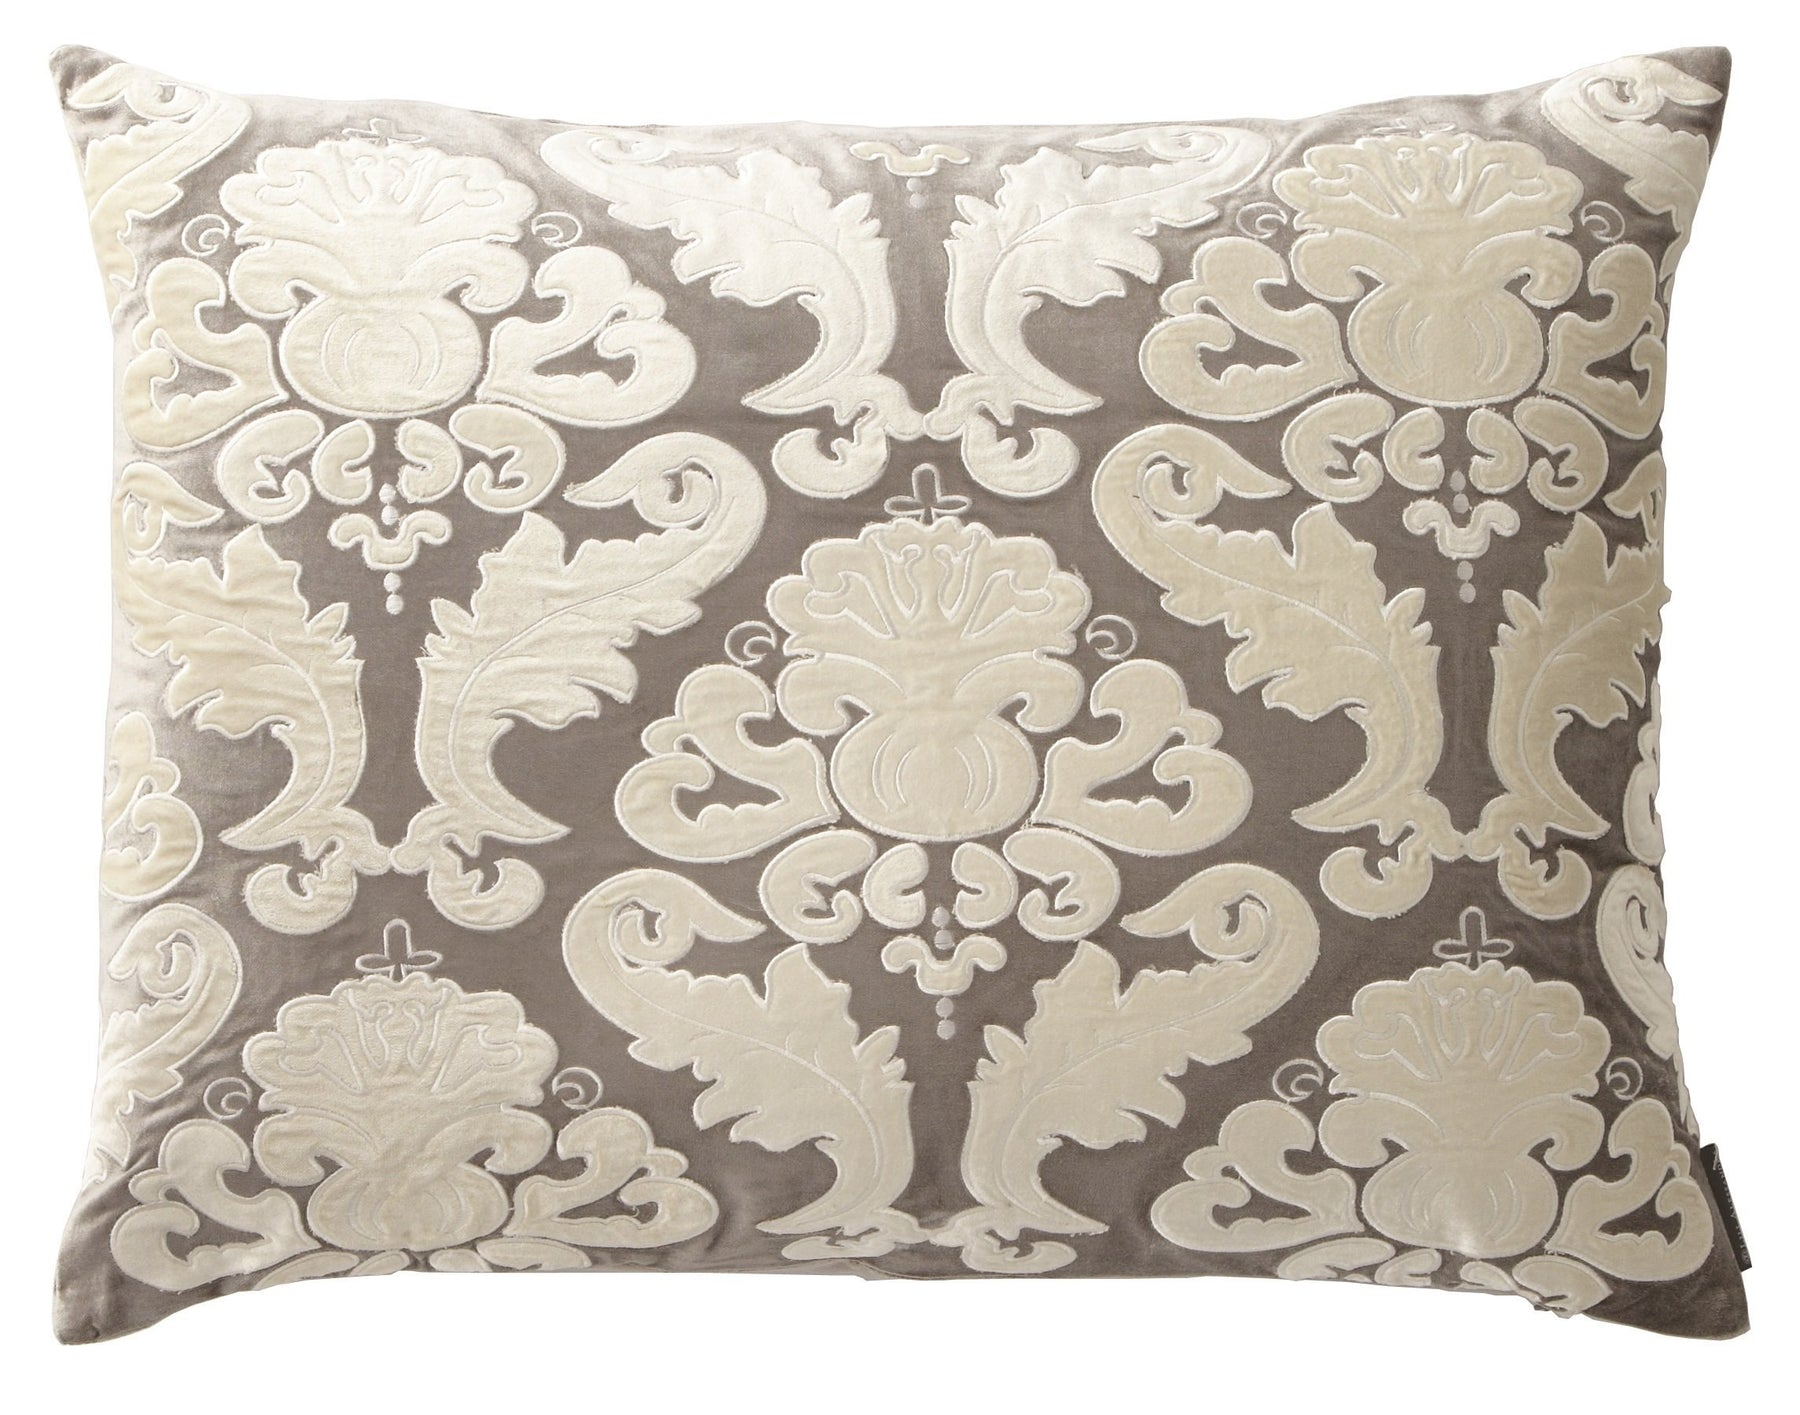 garden sage overstock bedb on orders shipping home pillows product over eden throw free ellen degeneres pillow